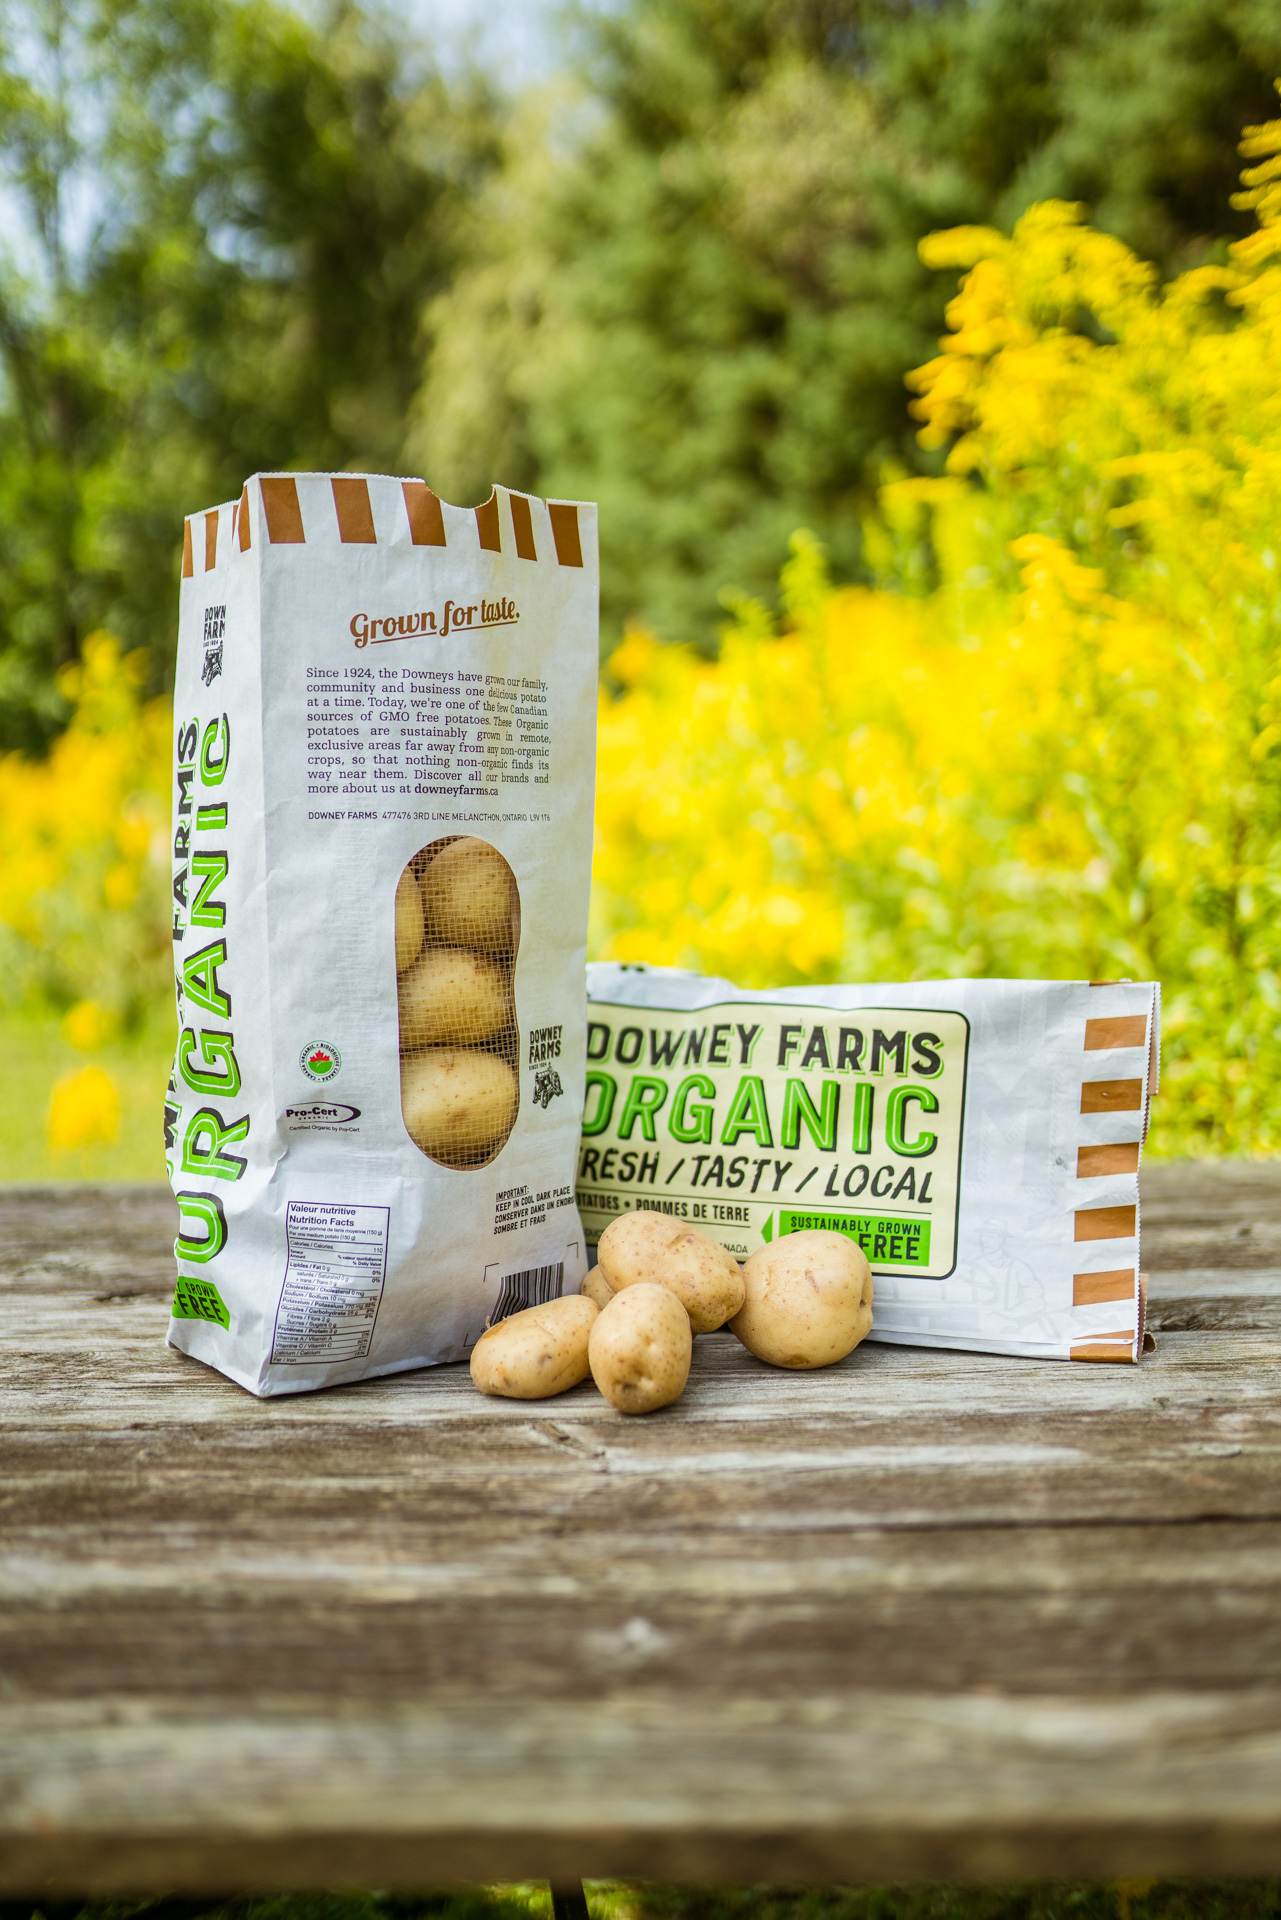 Downey Farms Organic Potato packaging in a paper compostable bag.